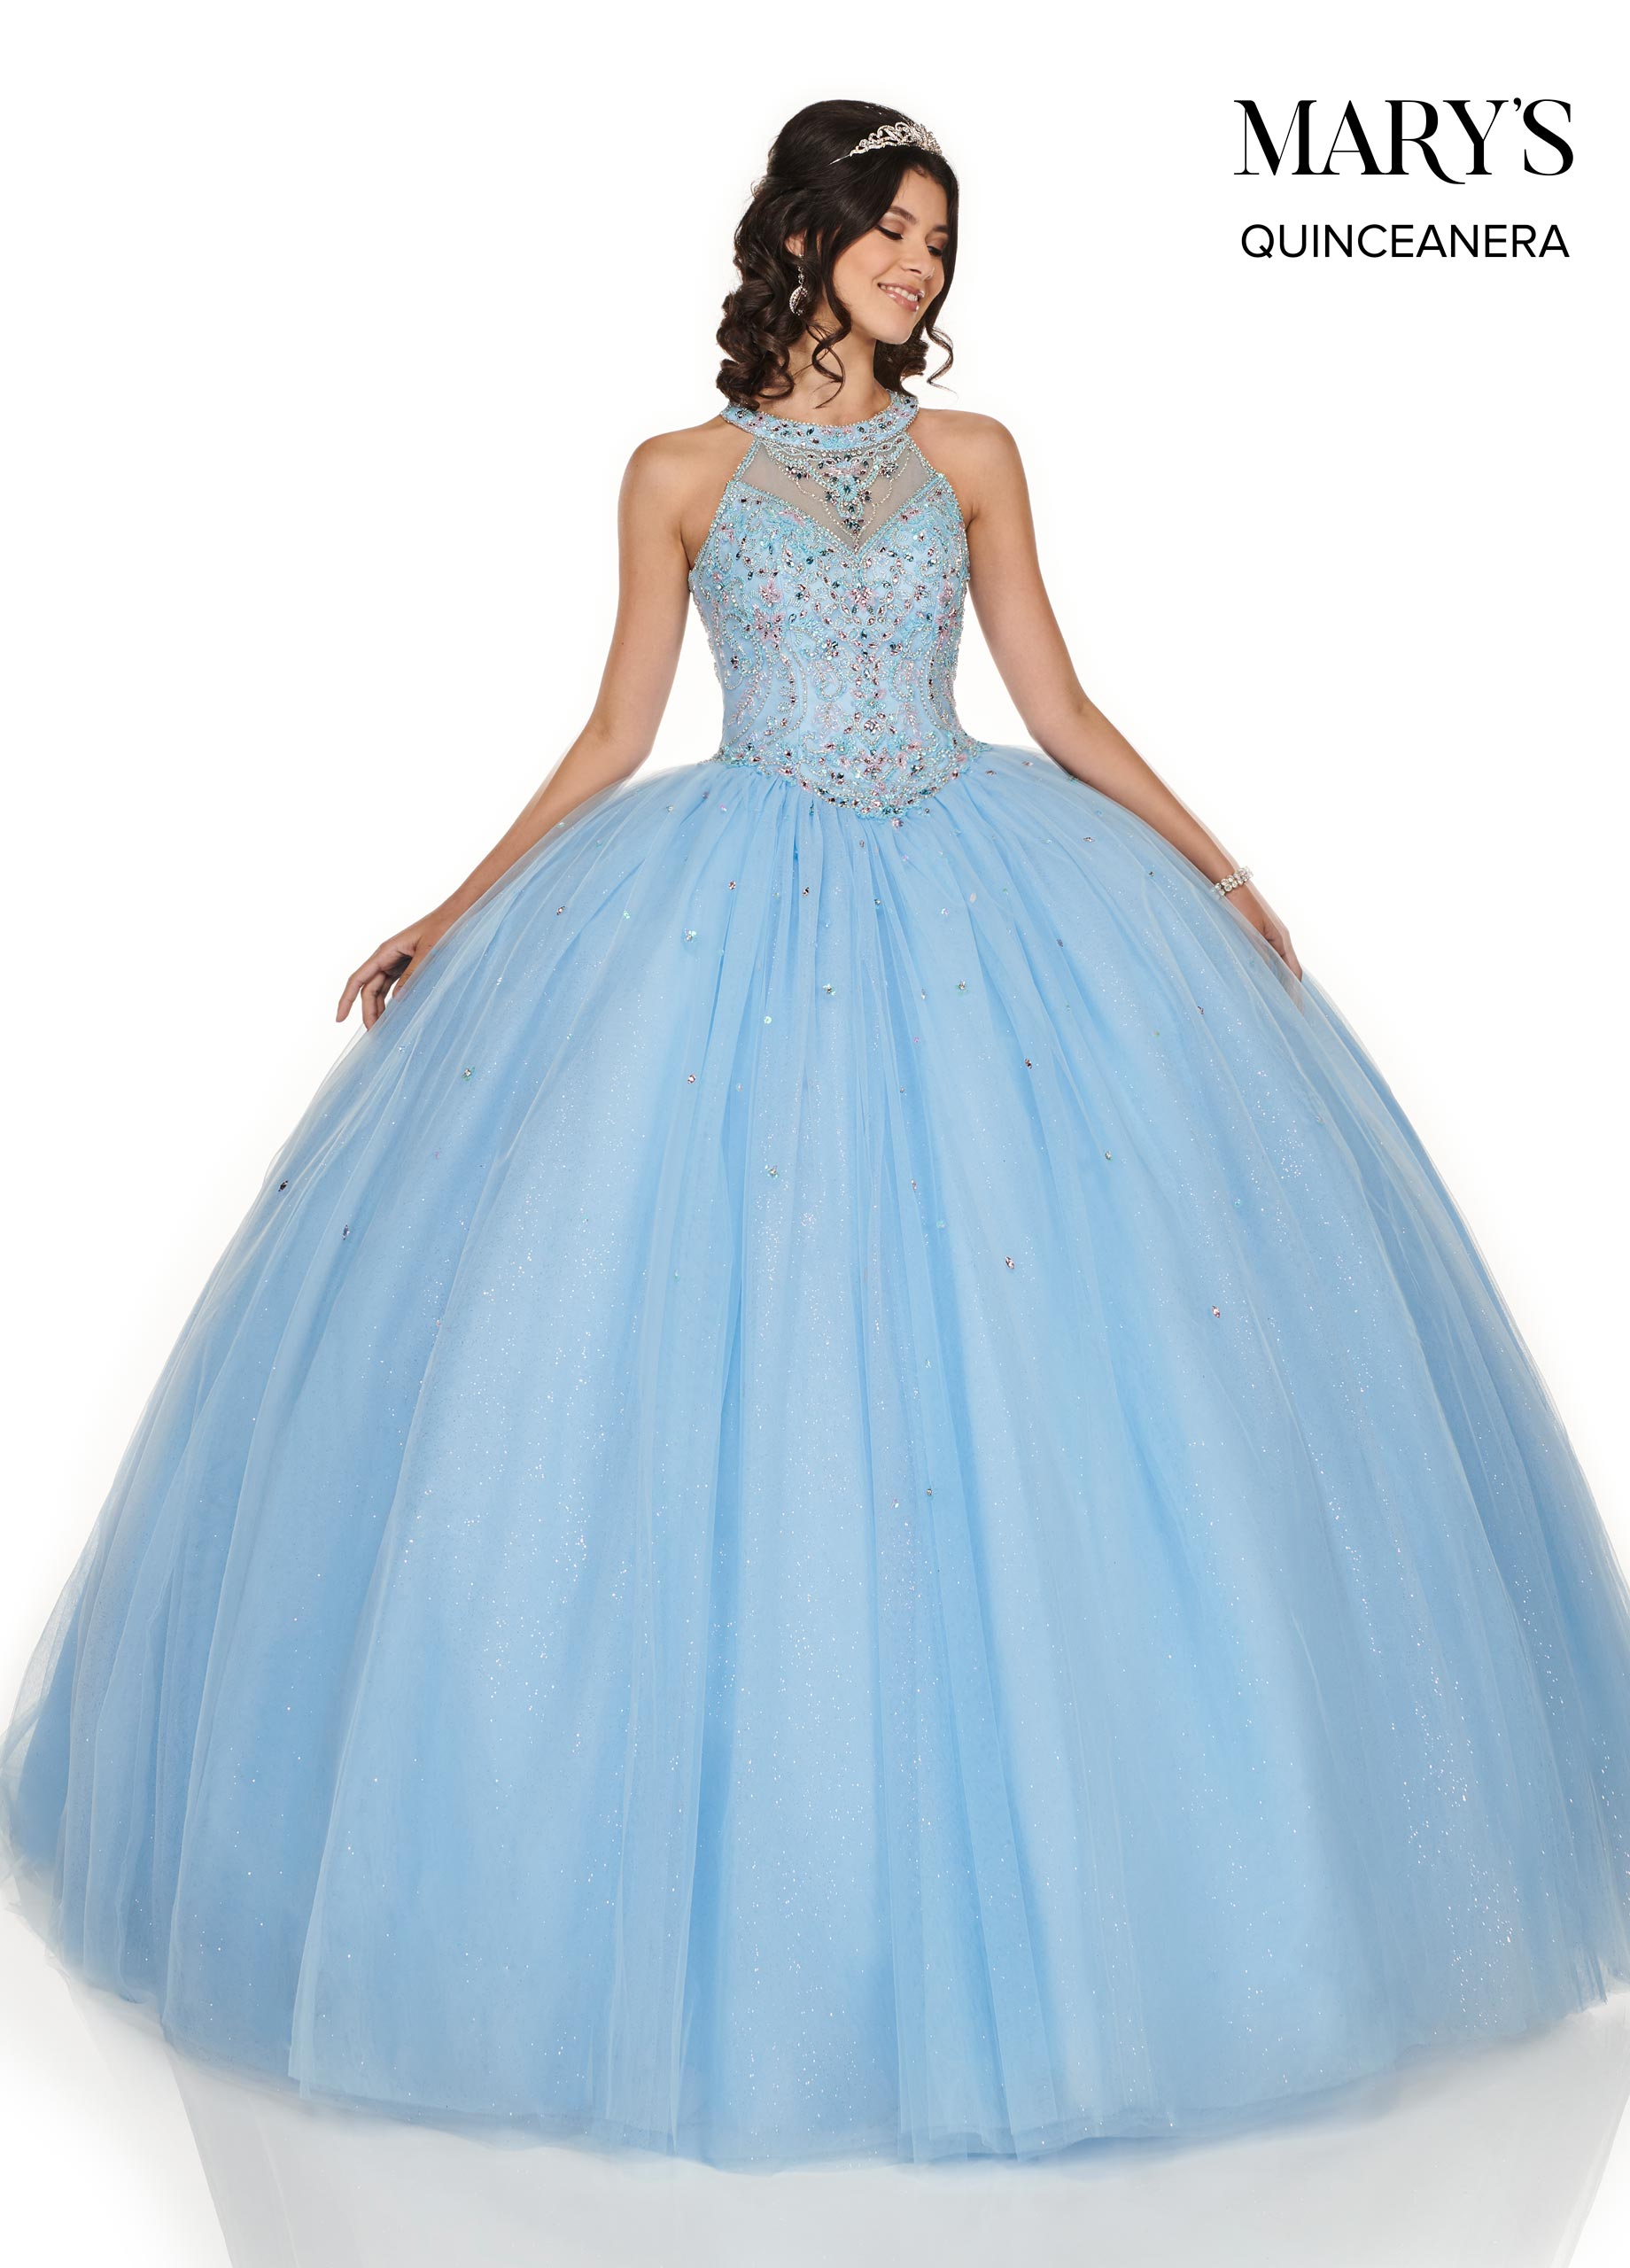 Marys Quinceanera Dresses | Mary's Quinceanera | Style - MQ1048